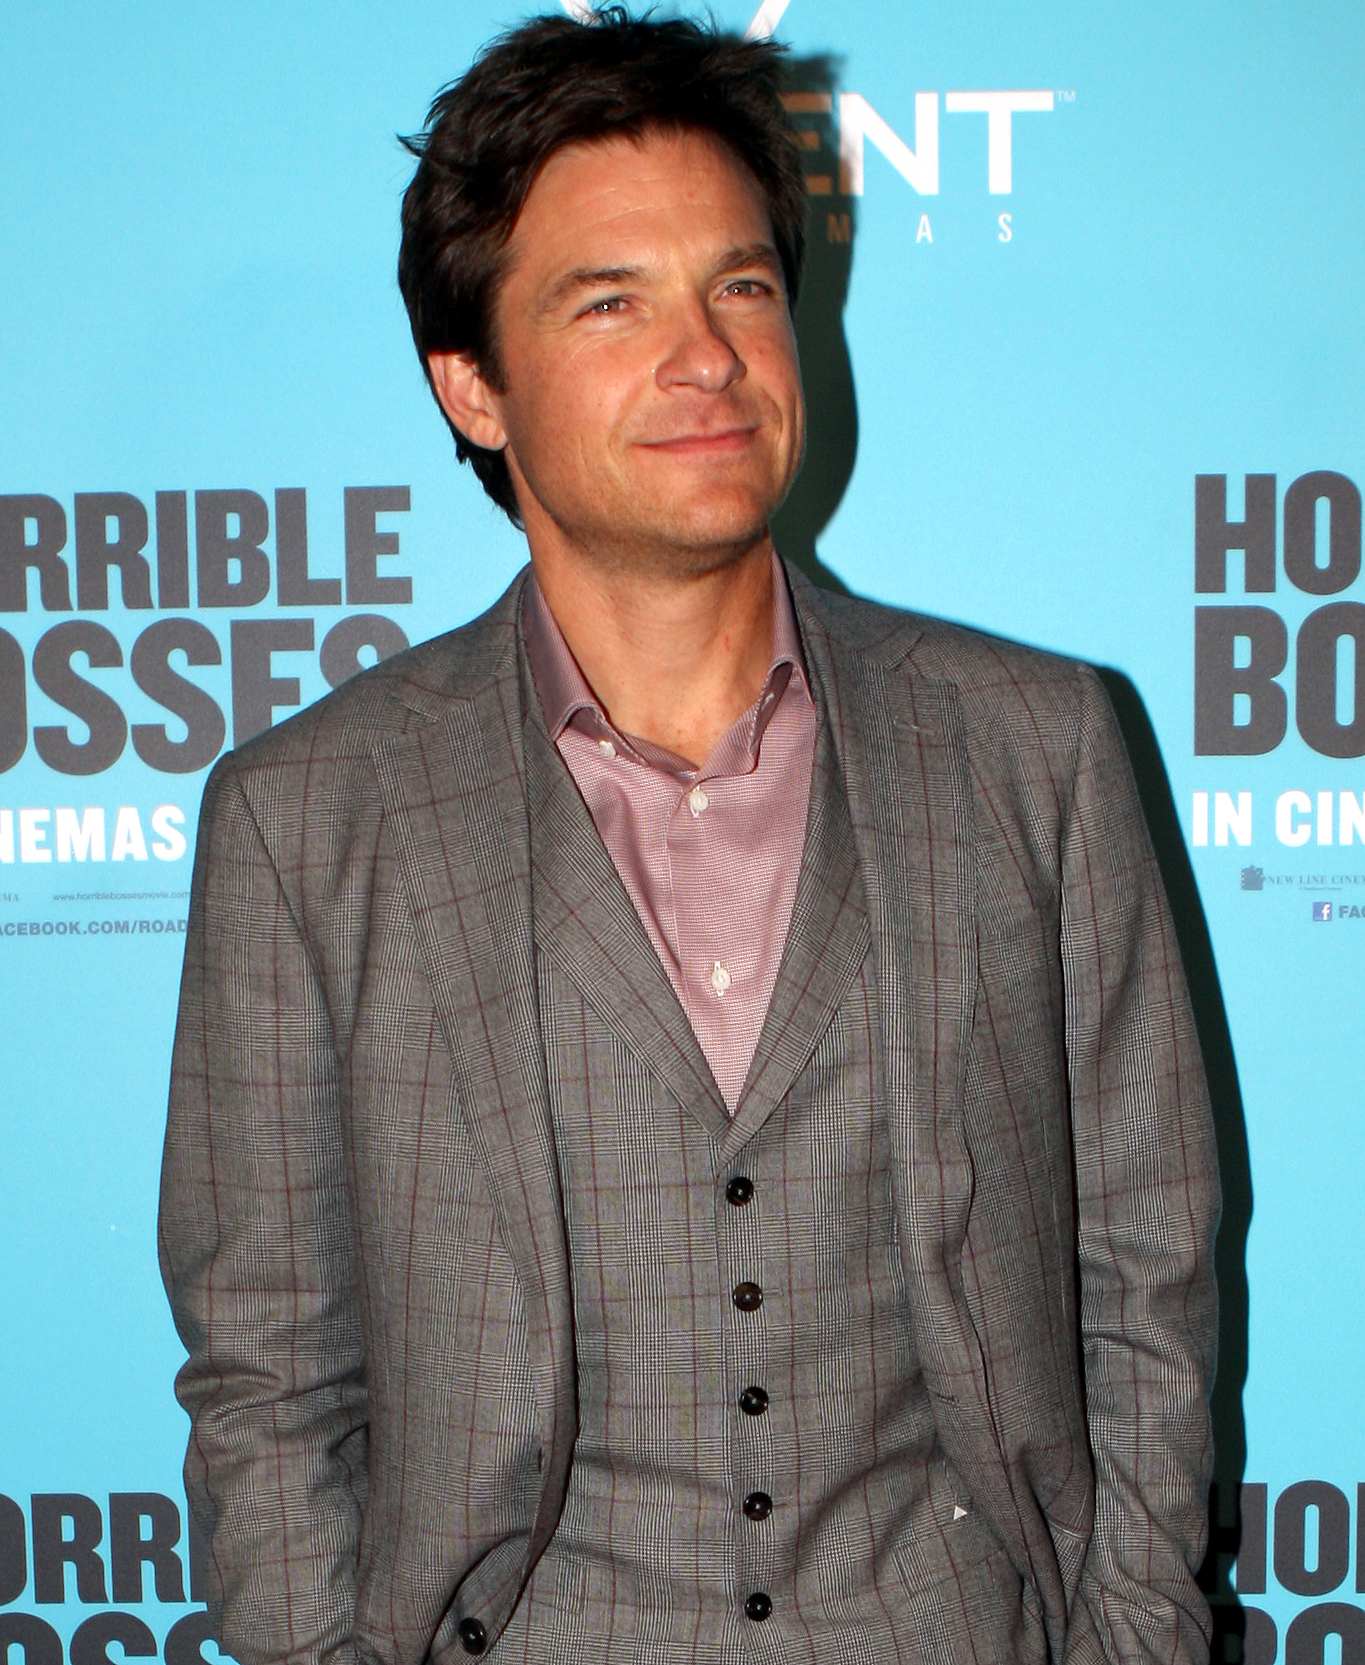 Jason Bateman at Horrible Bosses premiere